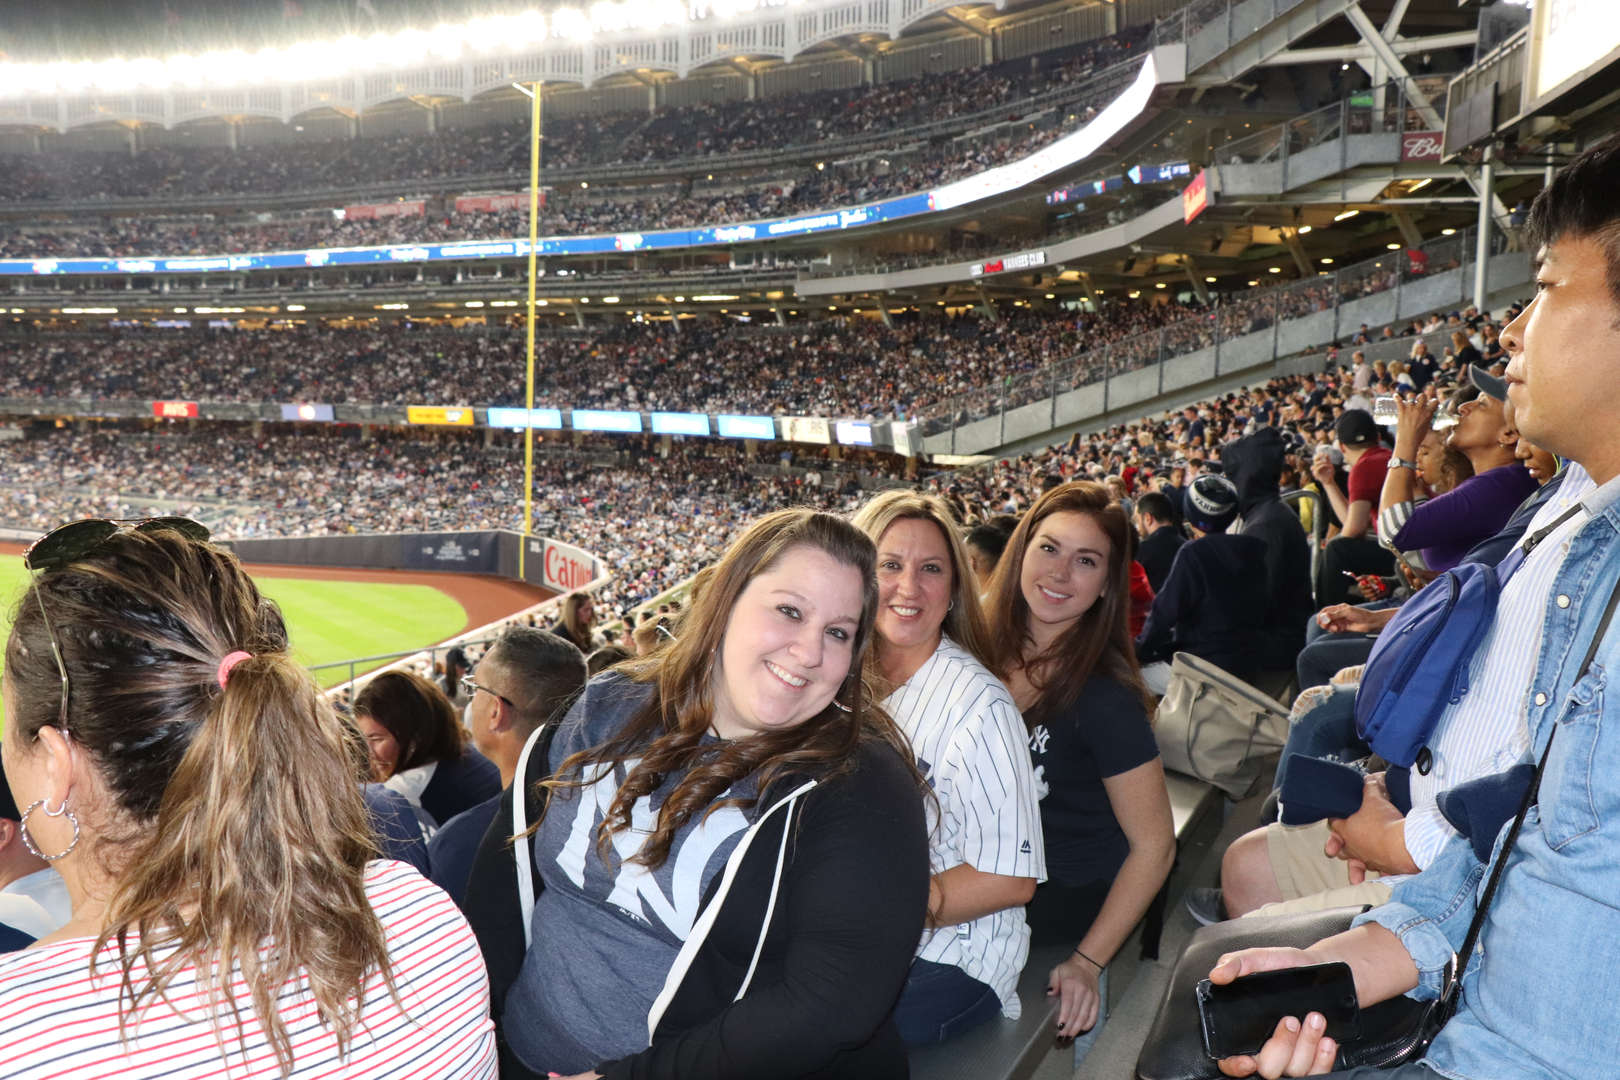 More of the PS 152  staff at the Yankee game